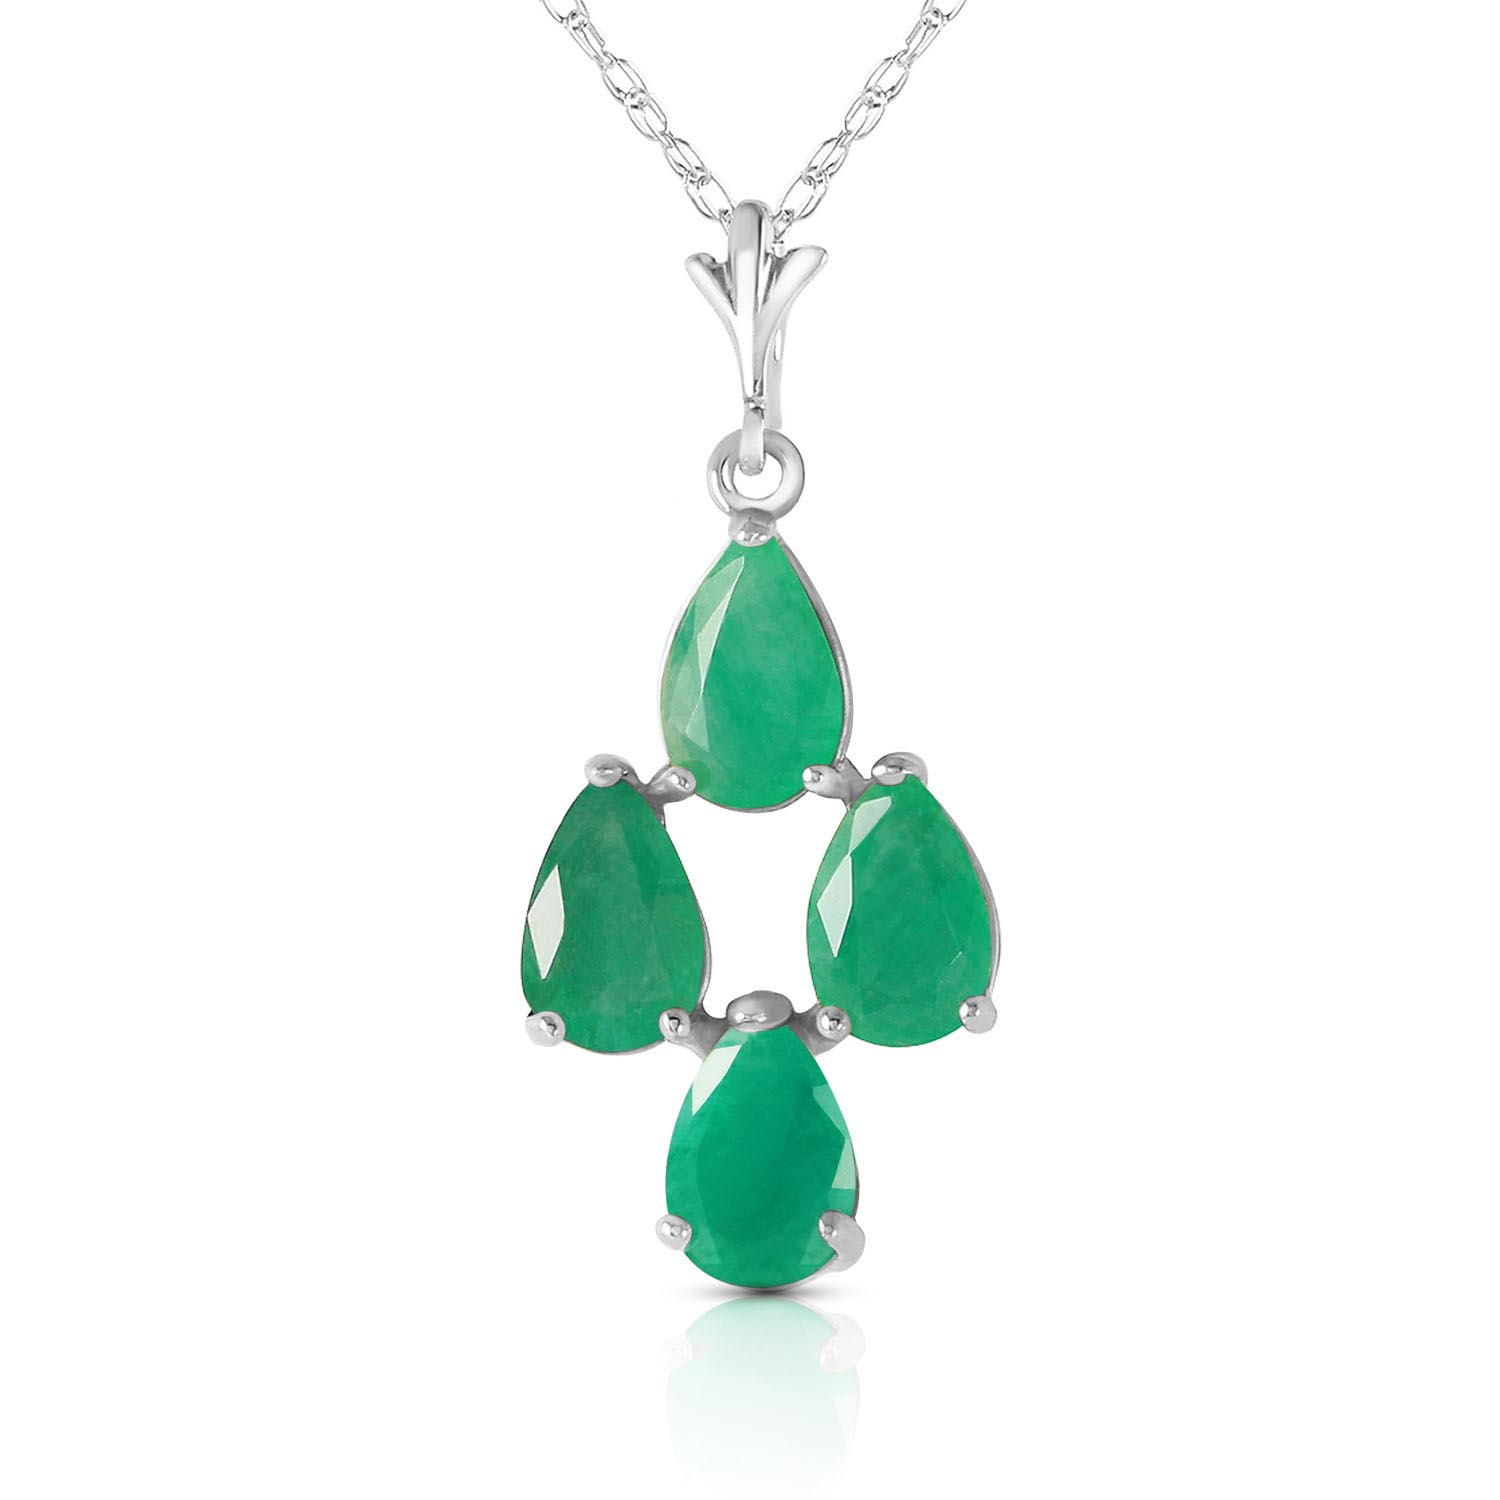 Bargain Pear Cut Emerald Pendant Necklace 1.5ctw in 9ct White Gold Stockists